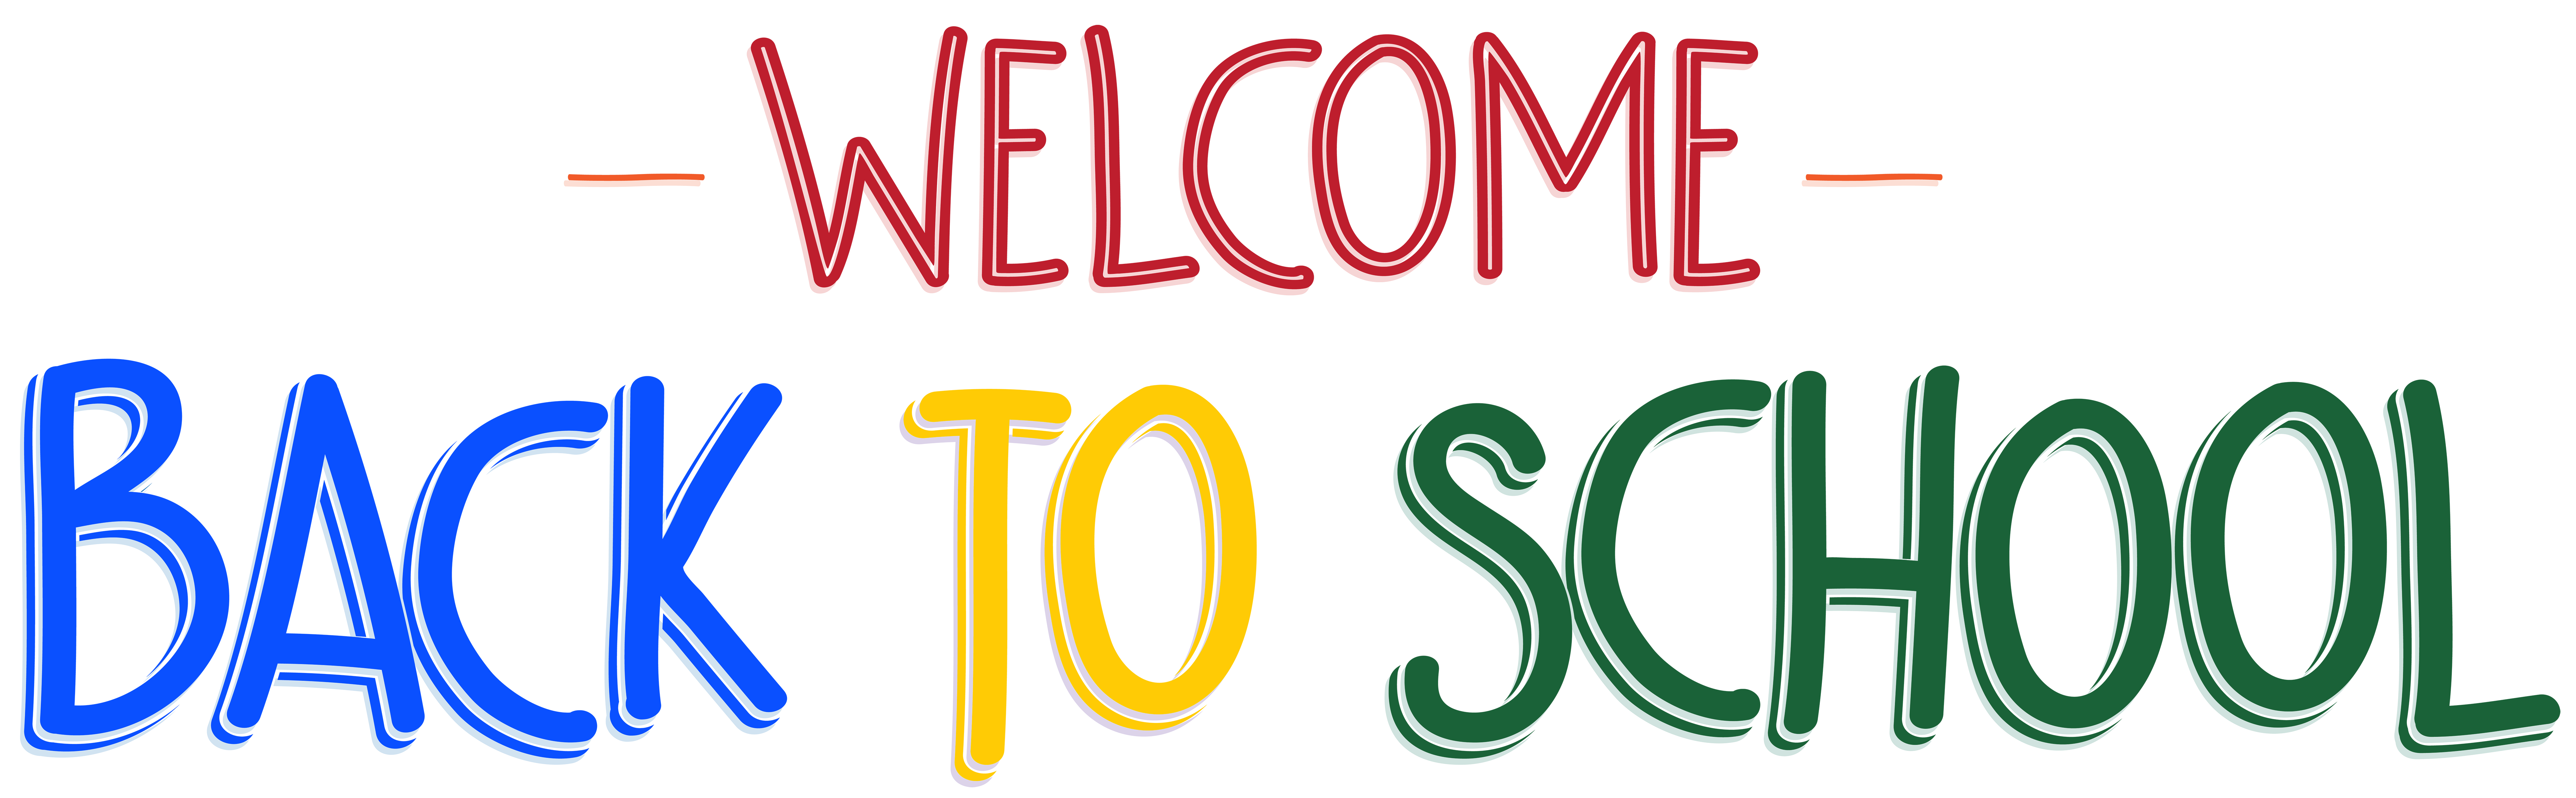 welcome back to school png clip art image gallery yopriceville rh pinterest com clipart welcome back to school clipart welcome back to school